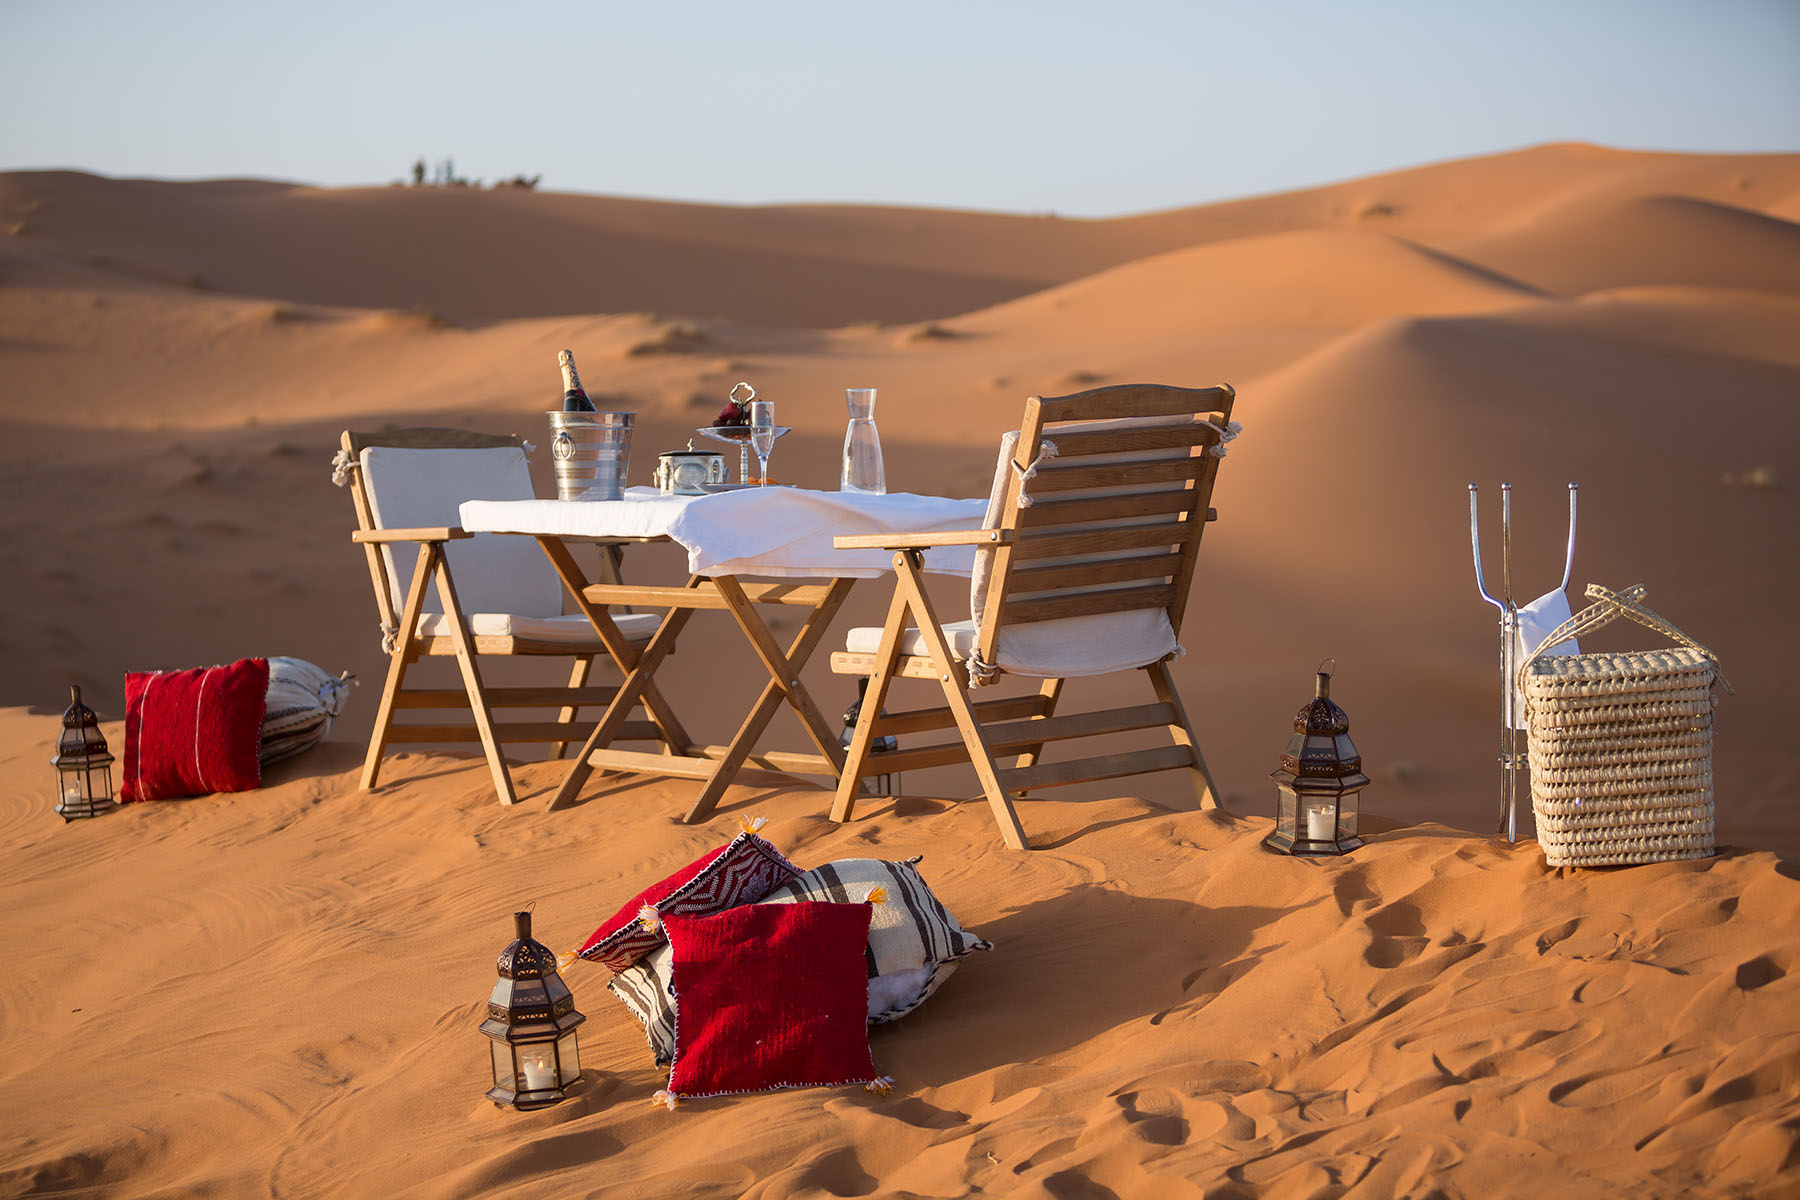 Dinners on the top of the dune